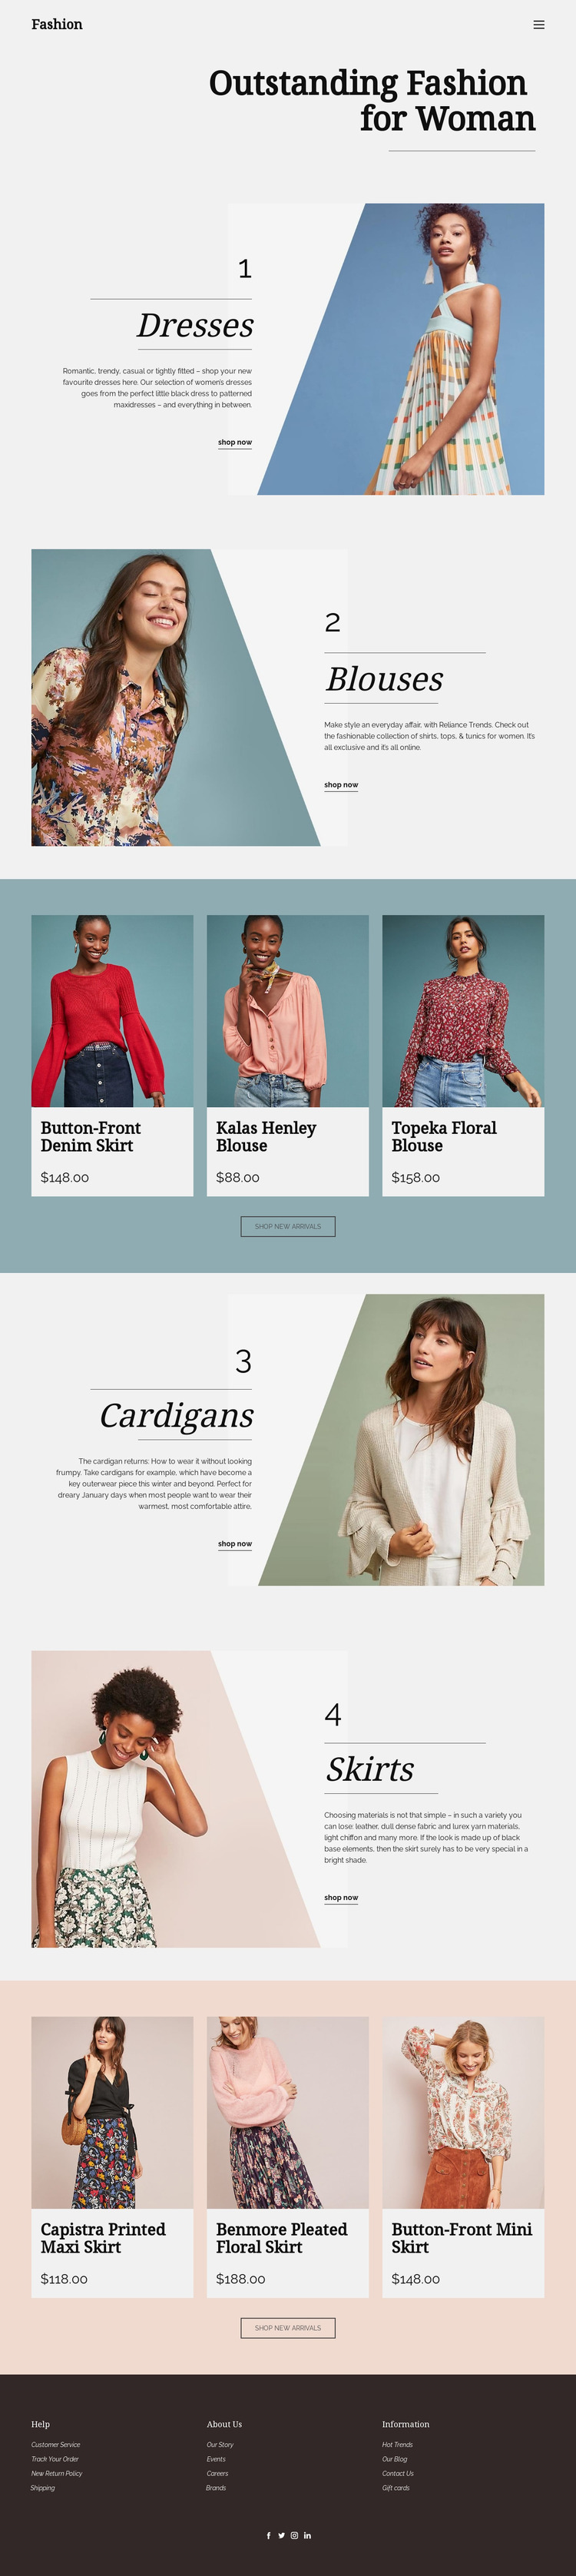 Fashion for Woman Website Mockup